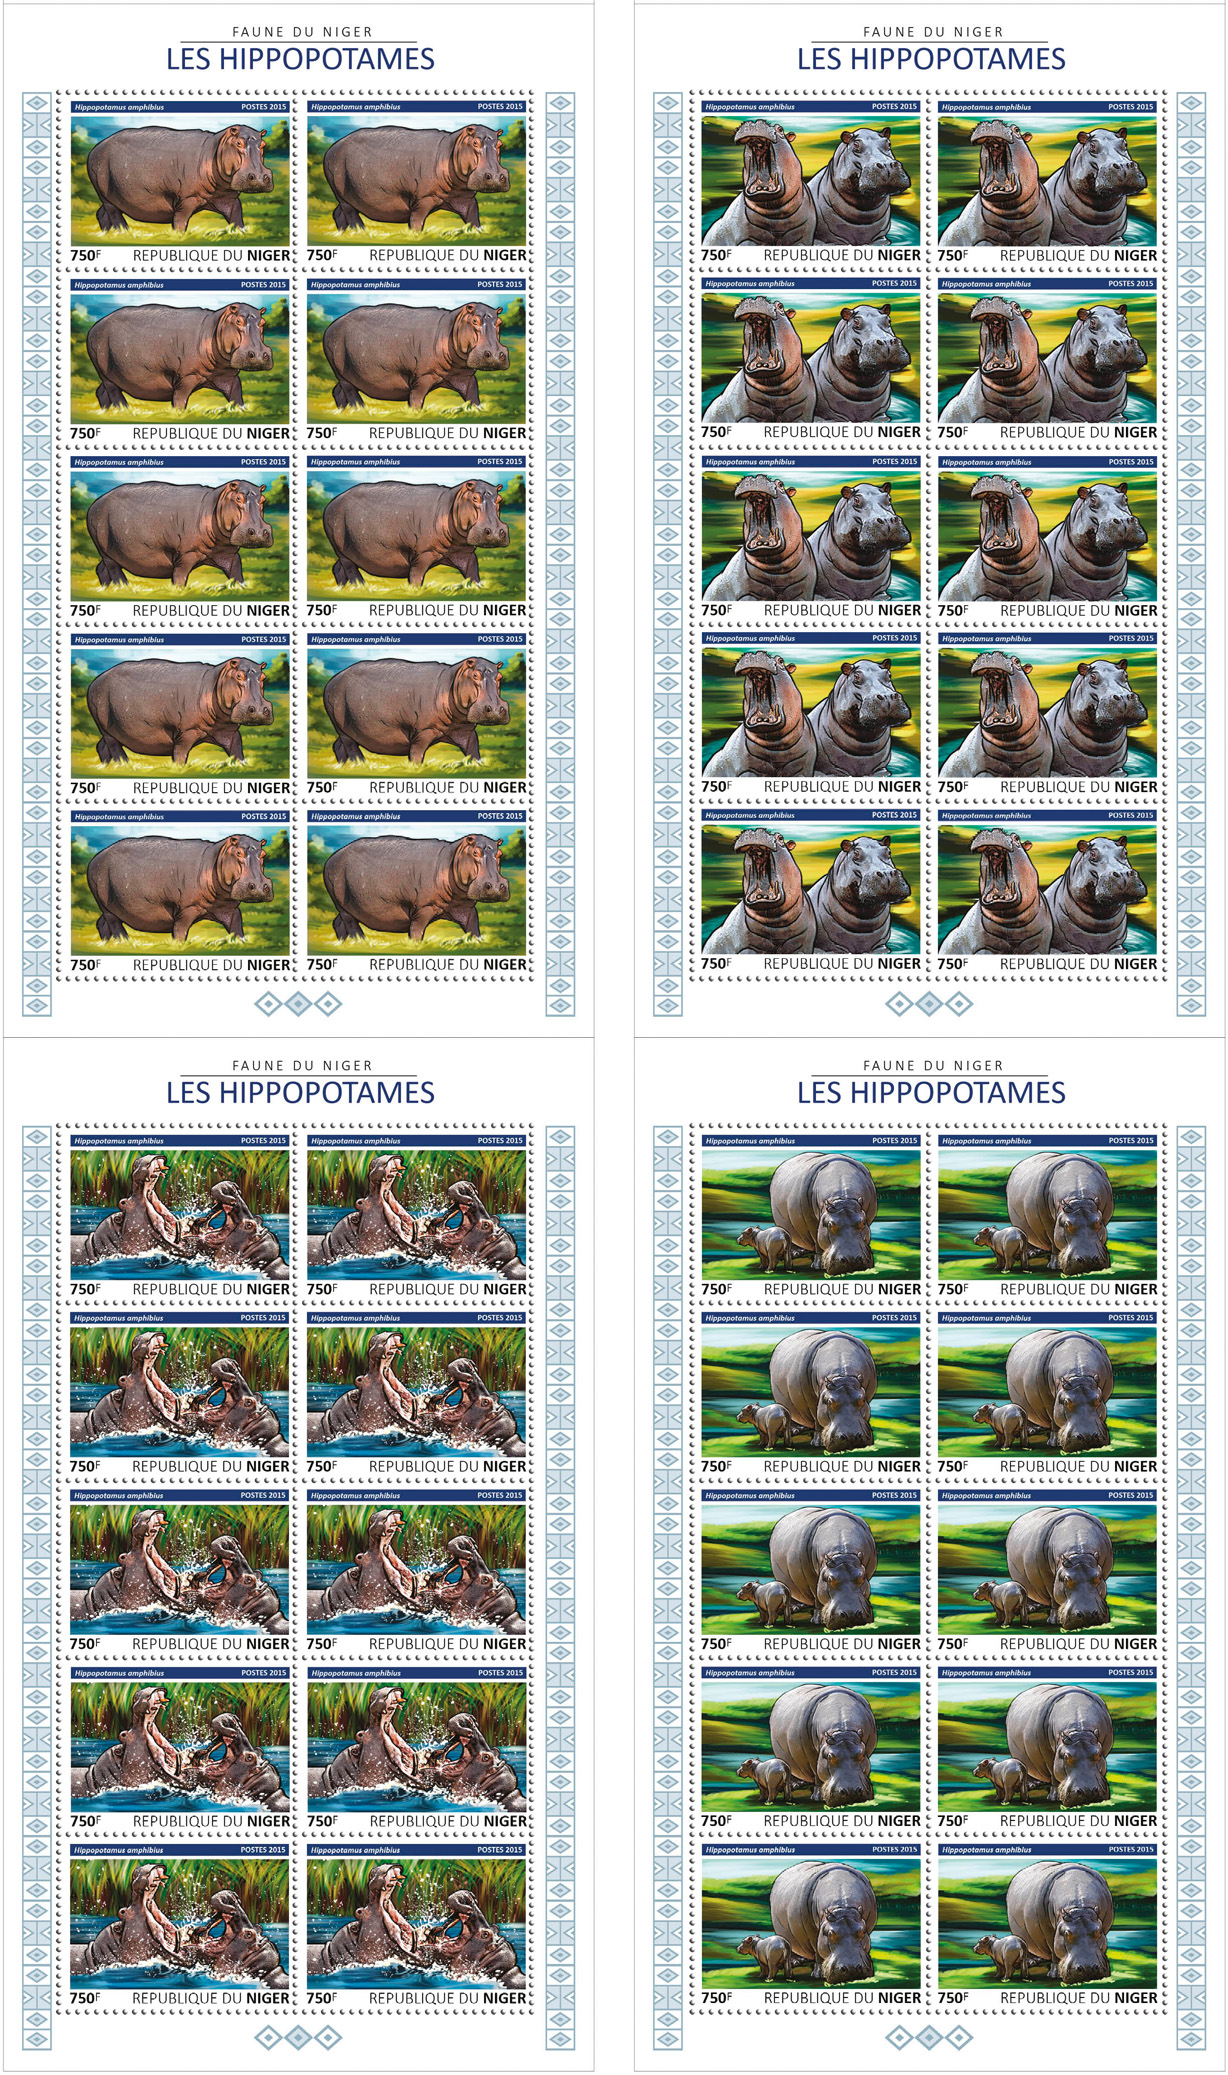 Hippos 4x10v - Issue of Niger postage stamps